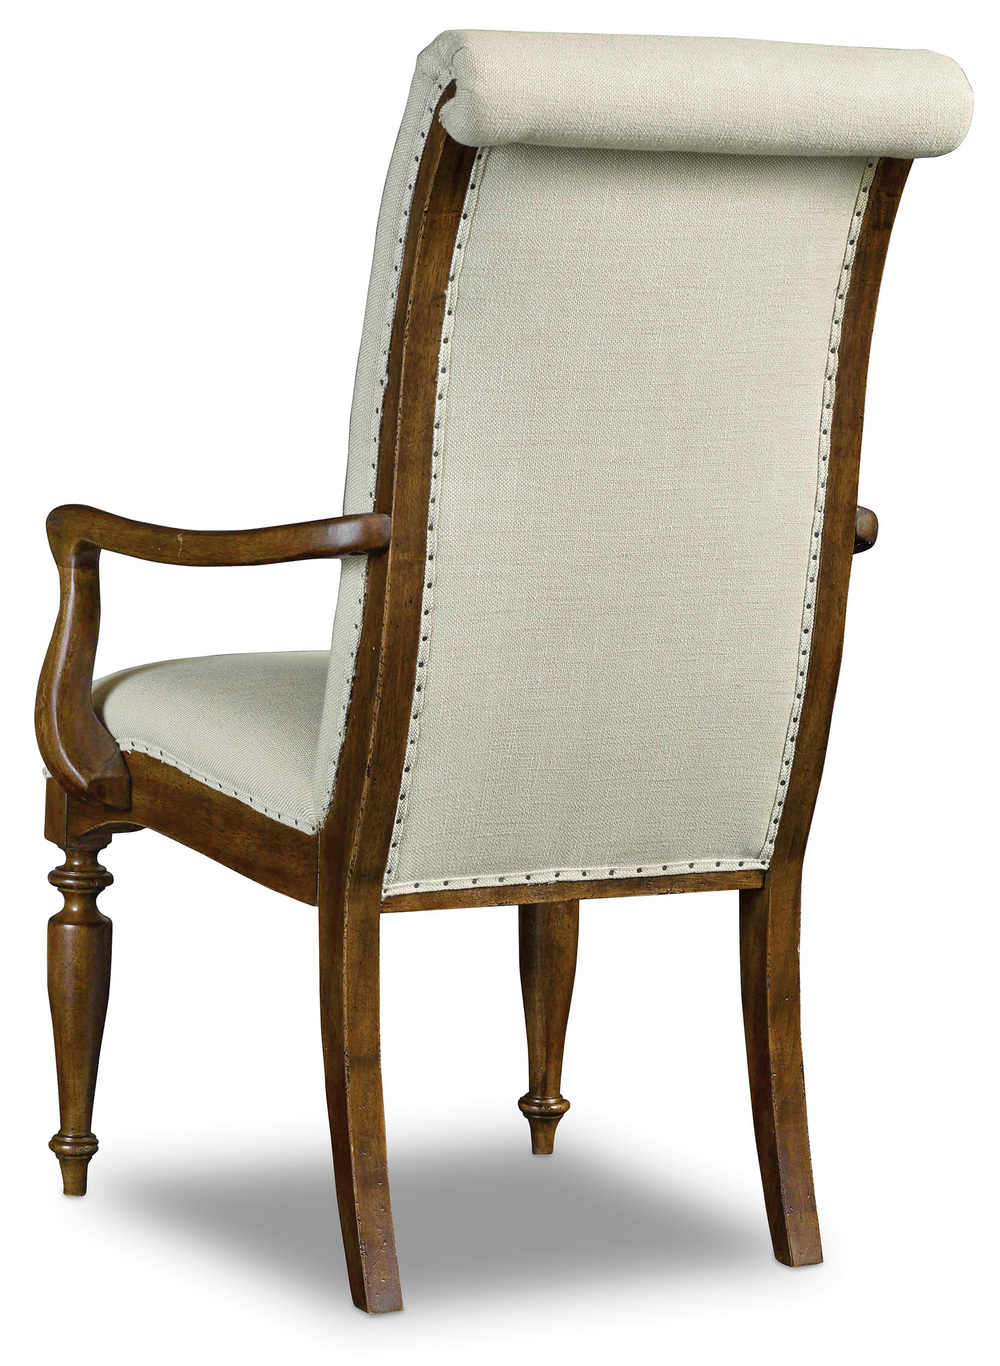 Hooker Furniture - Archivist Upholstered Arm Chair